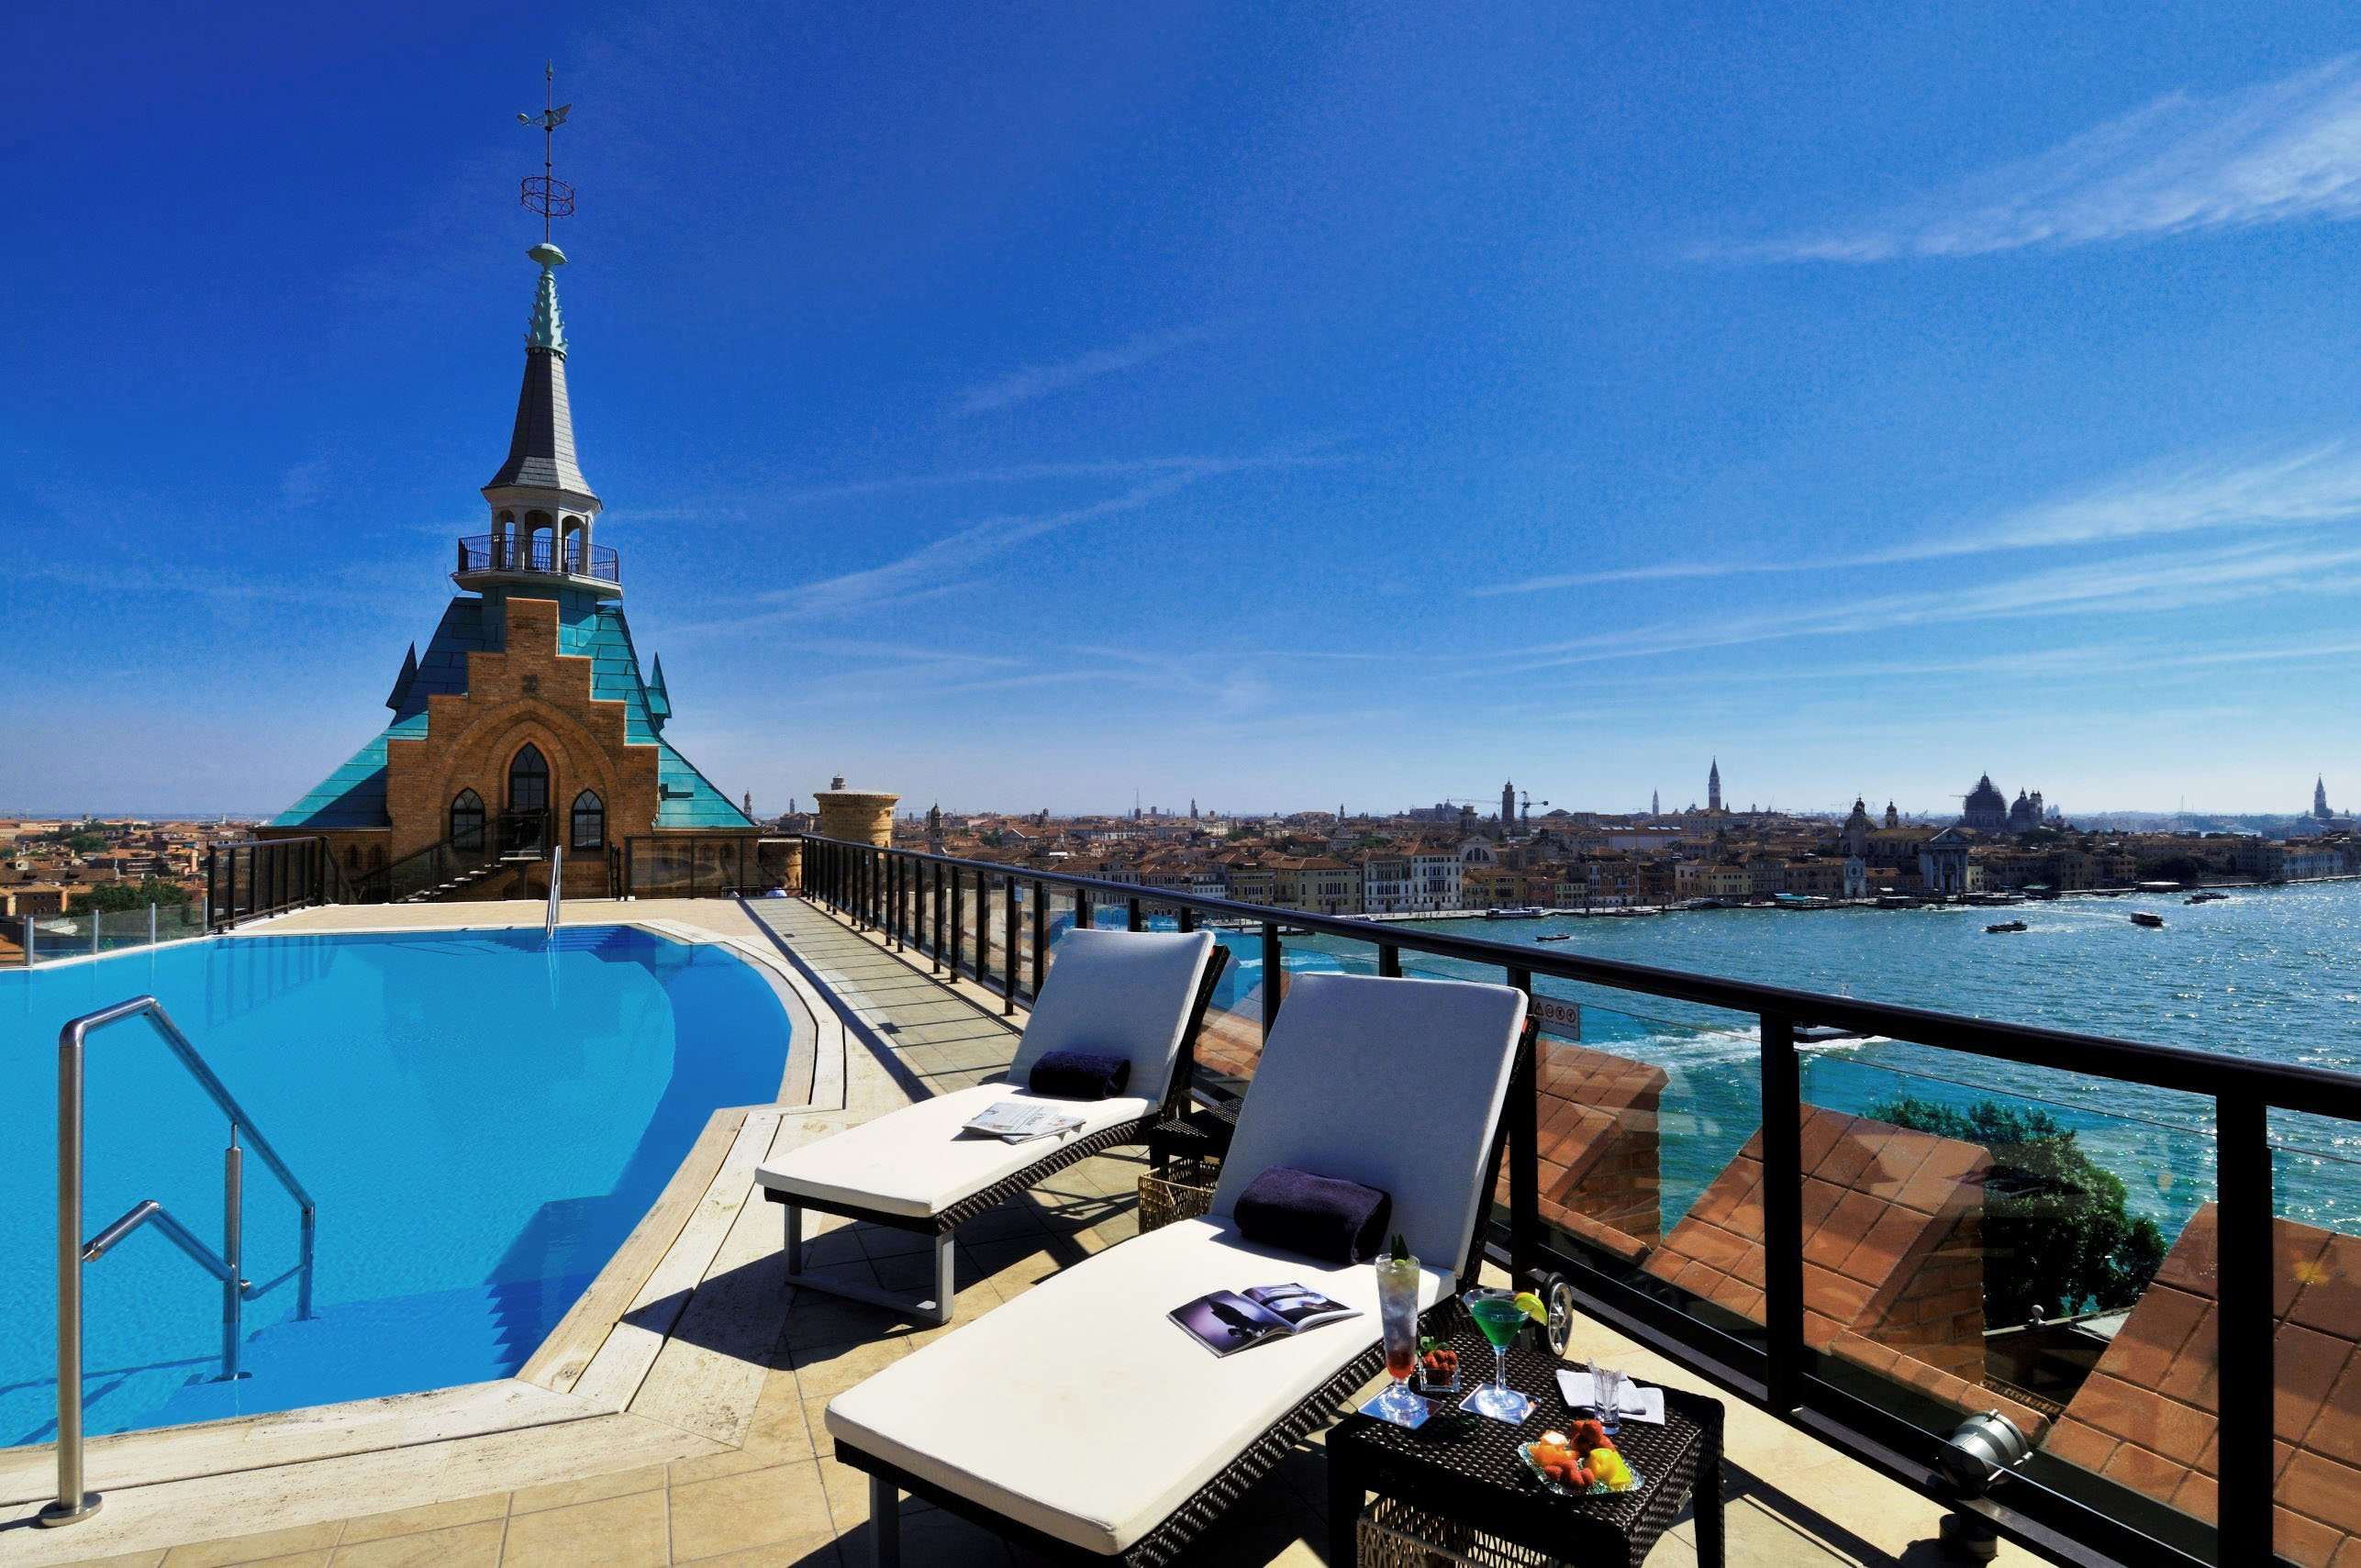 Views of Venice's scenic canals are part of the draw at the Hilton Molino Stucky's rooftop pool.